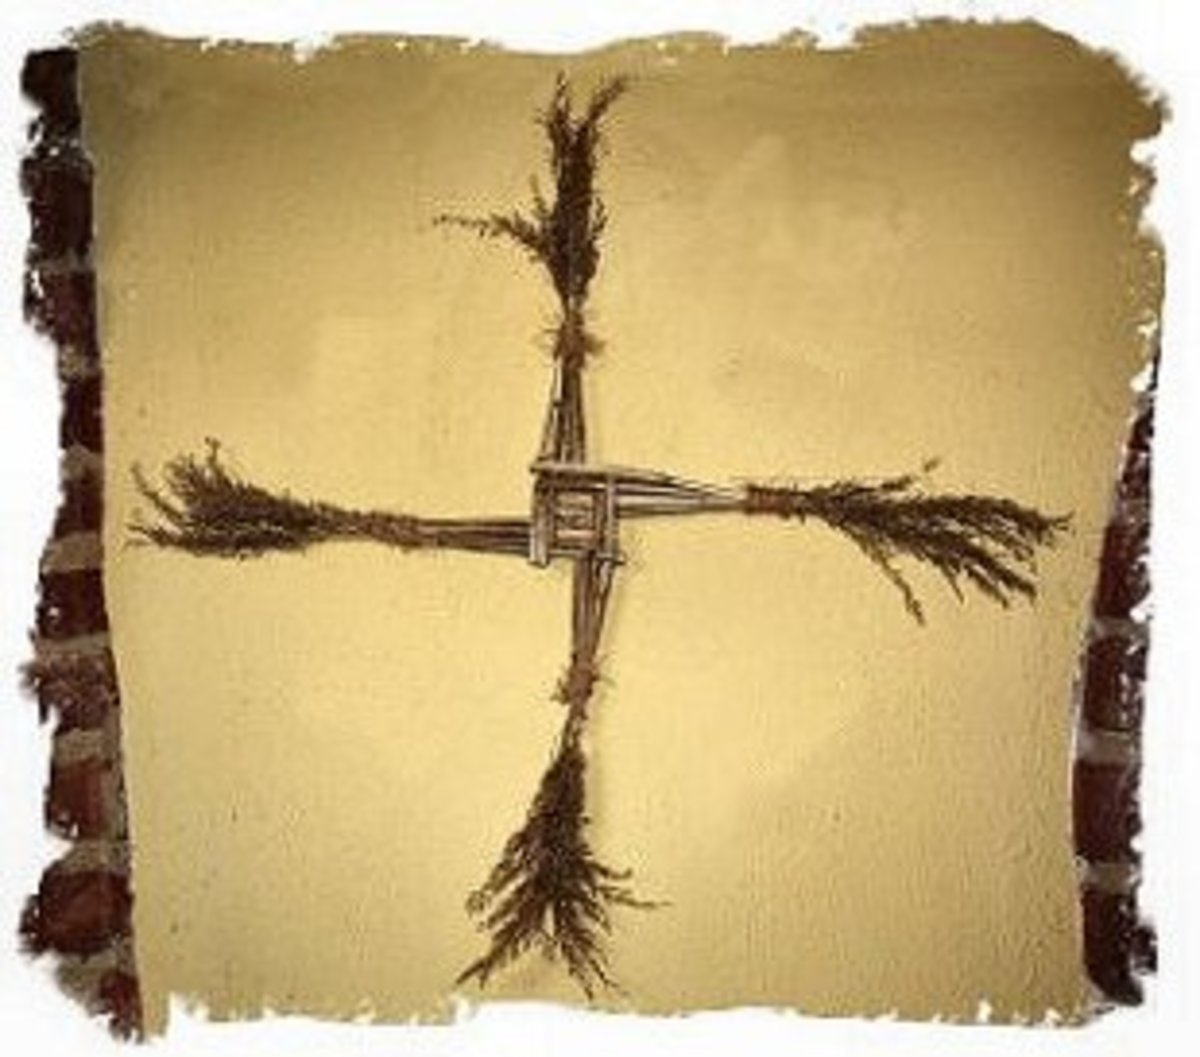 Legends of healing powers and miracles about the Christian Saint Brigid, born in the village of Faughart, County Louth in Ireland on February 1, 453 AD to a Druid father, and one of his servants are legion. She became Ireland's first nun and Abbess.